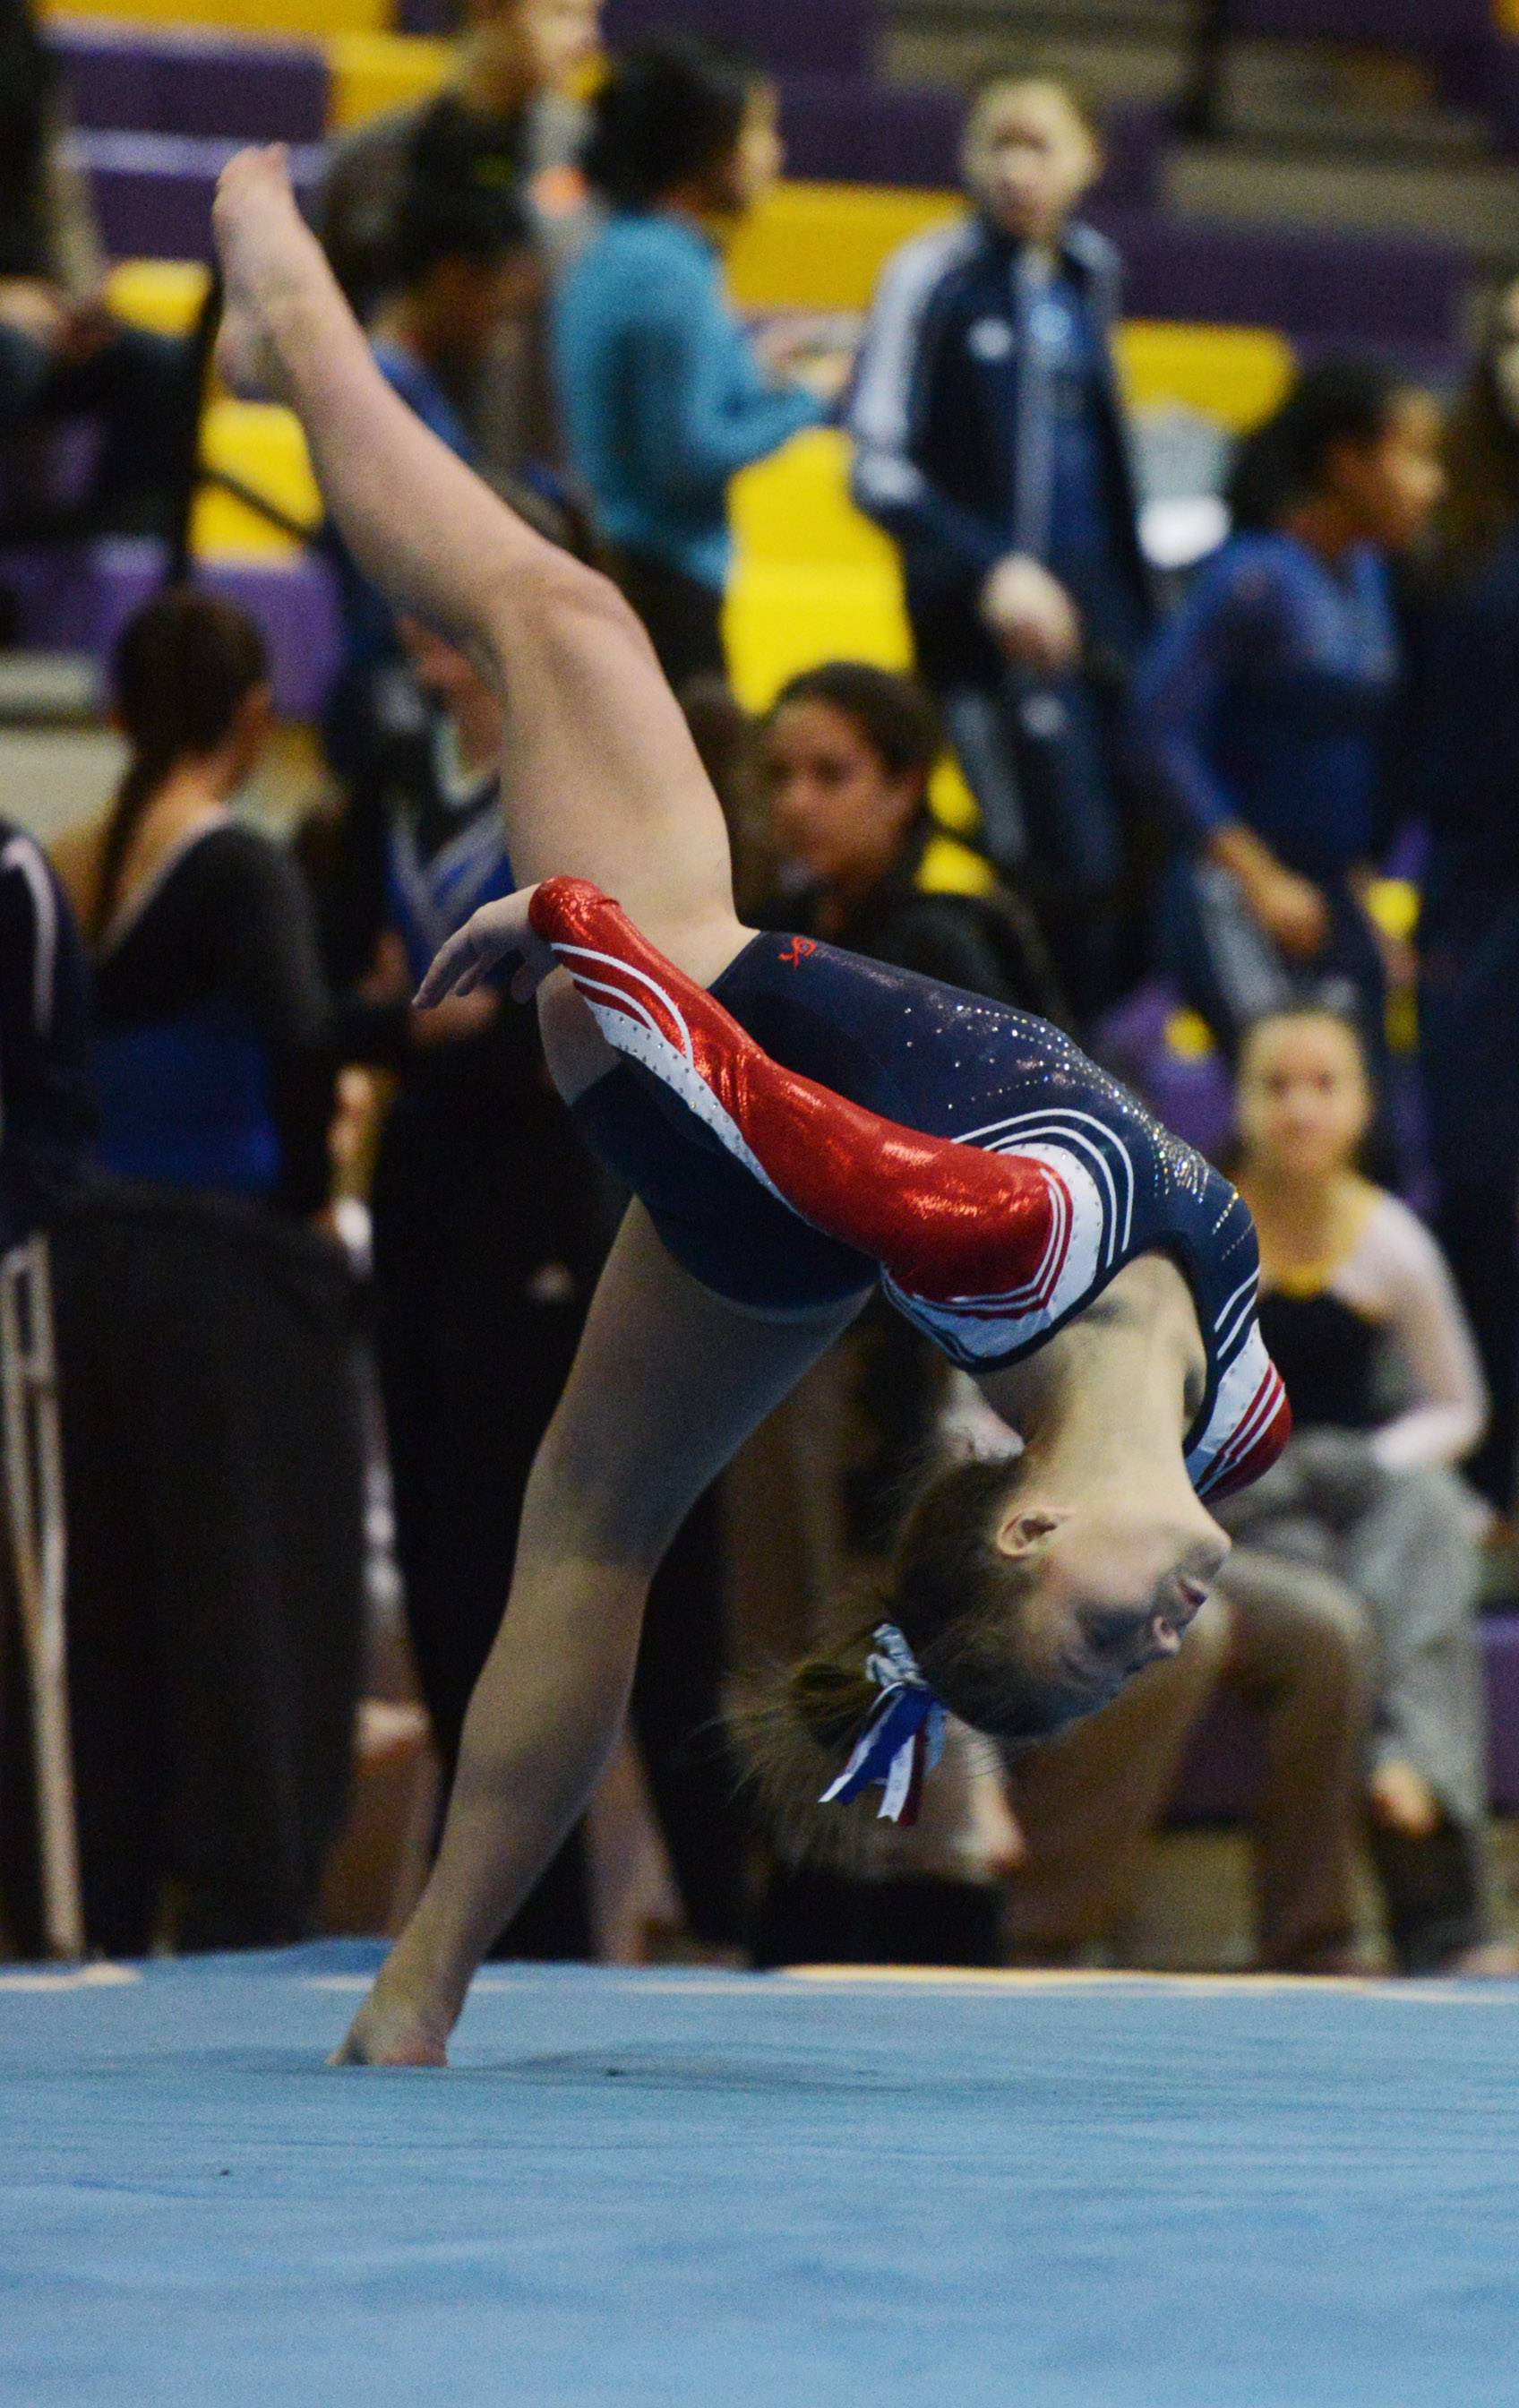 Conant's Sarah Taucher competes on the floor exercise during the Rolling Meadows invite Saturday.